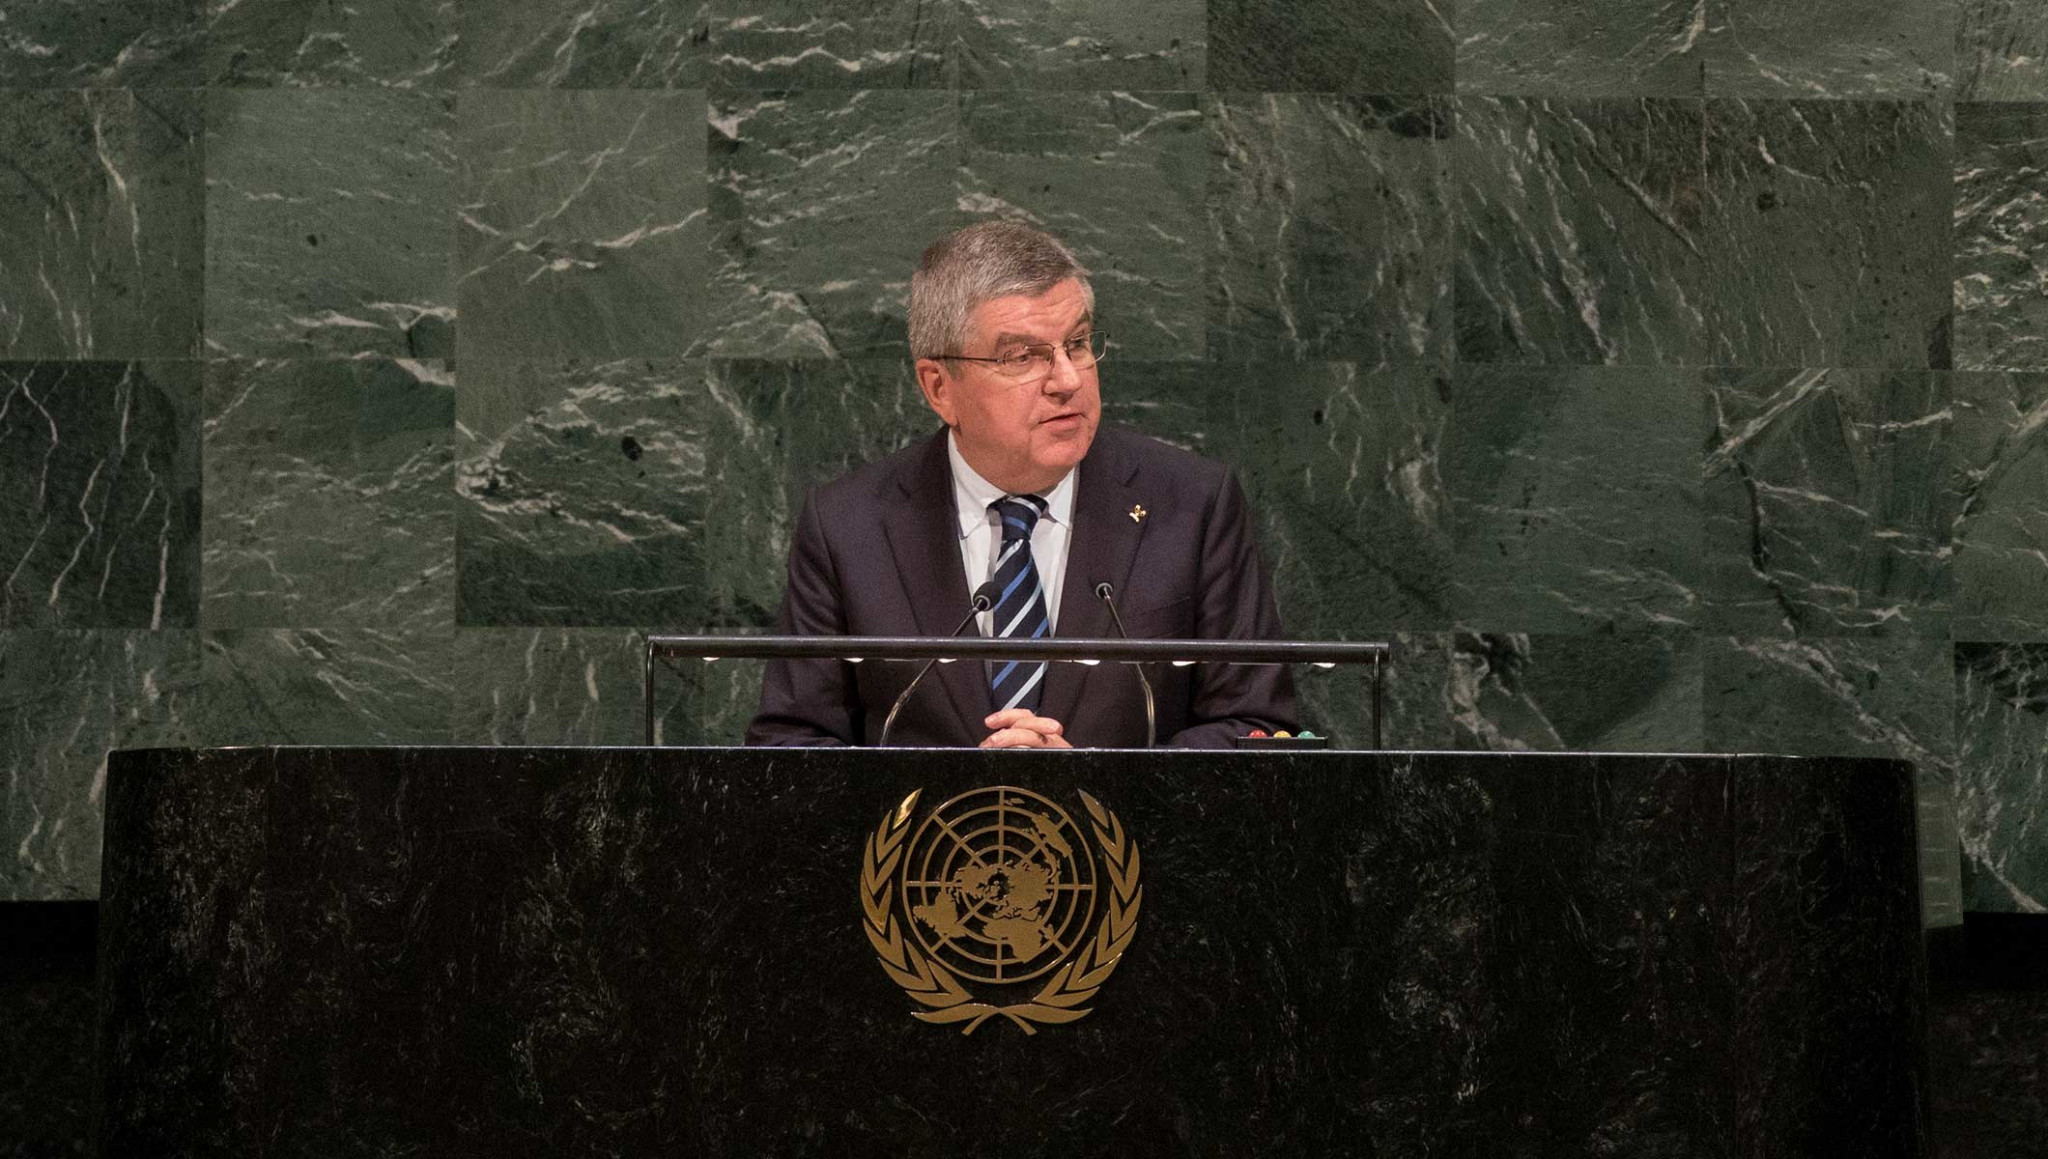 International Olympic Committee President Thomas Bach spoke at the Assembly ©IOC